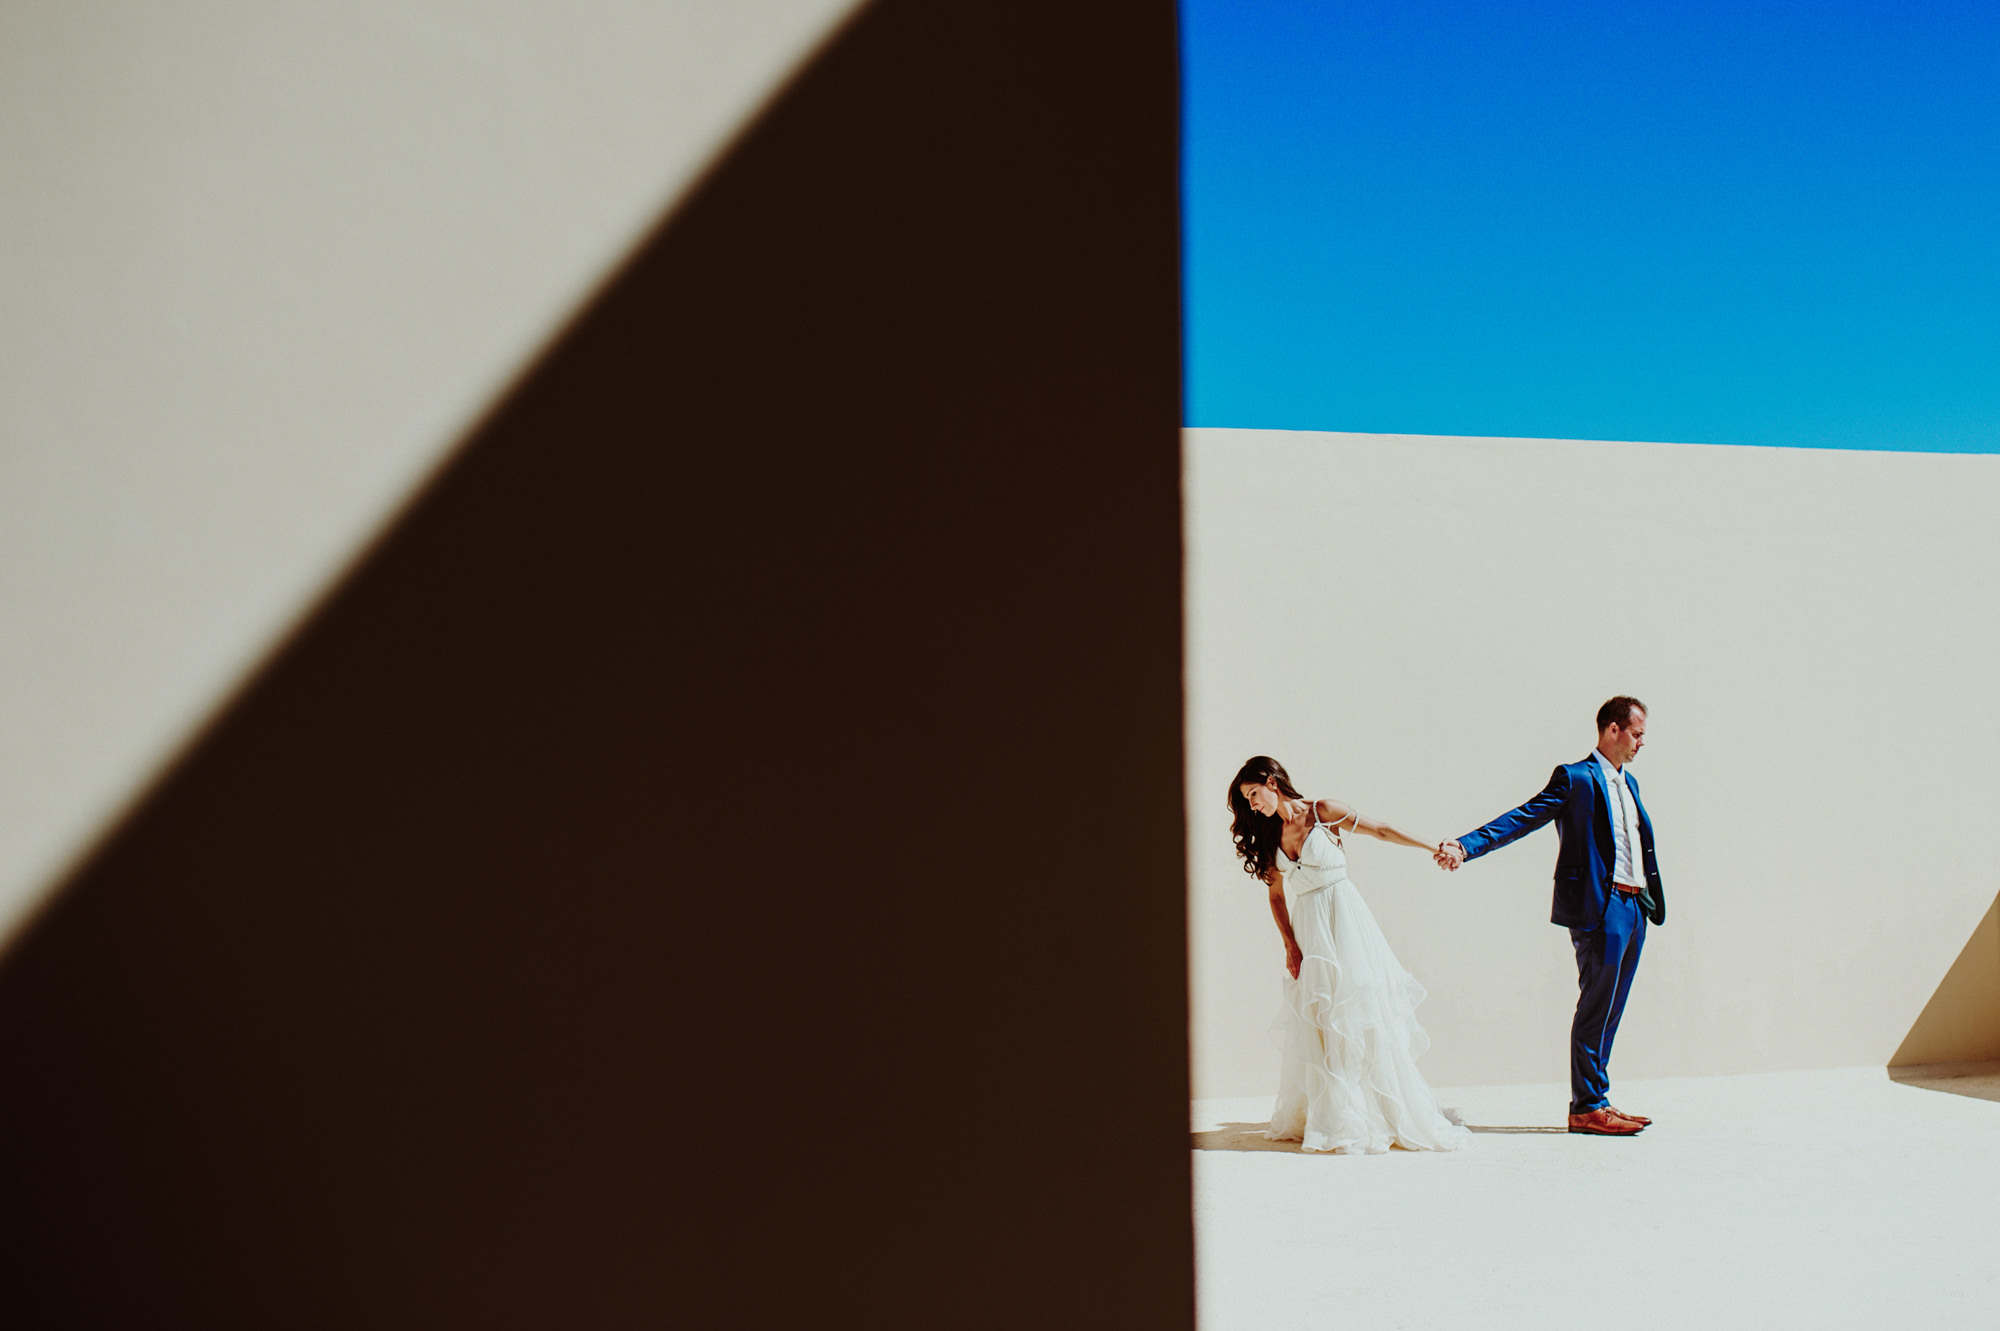 Creative portrait of bride and groom using geometric composition